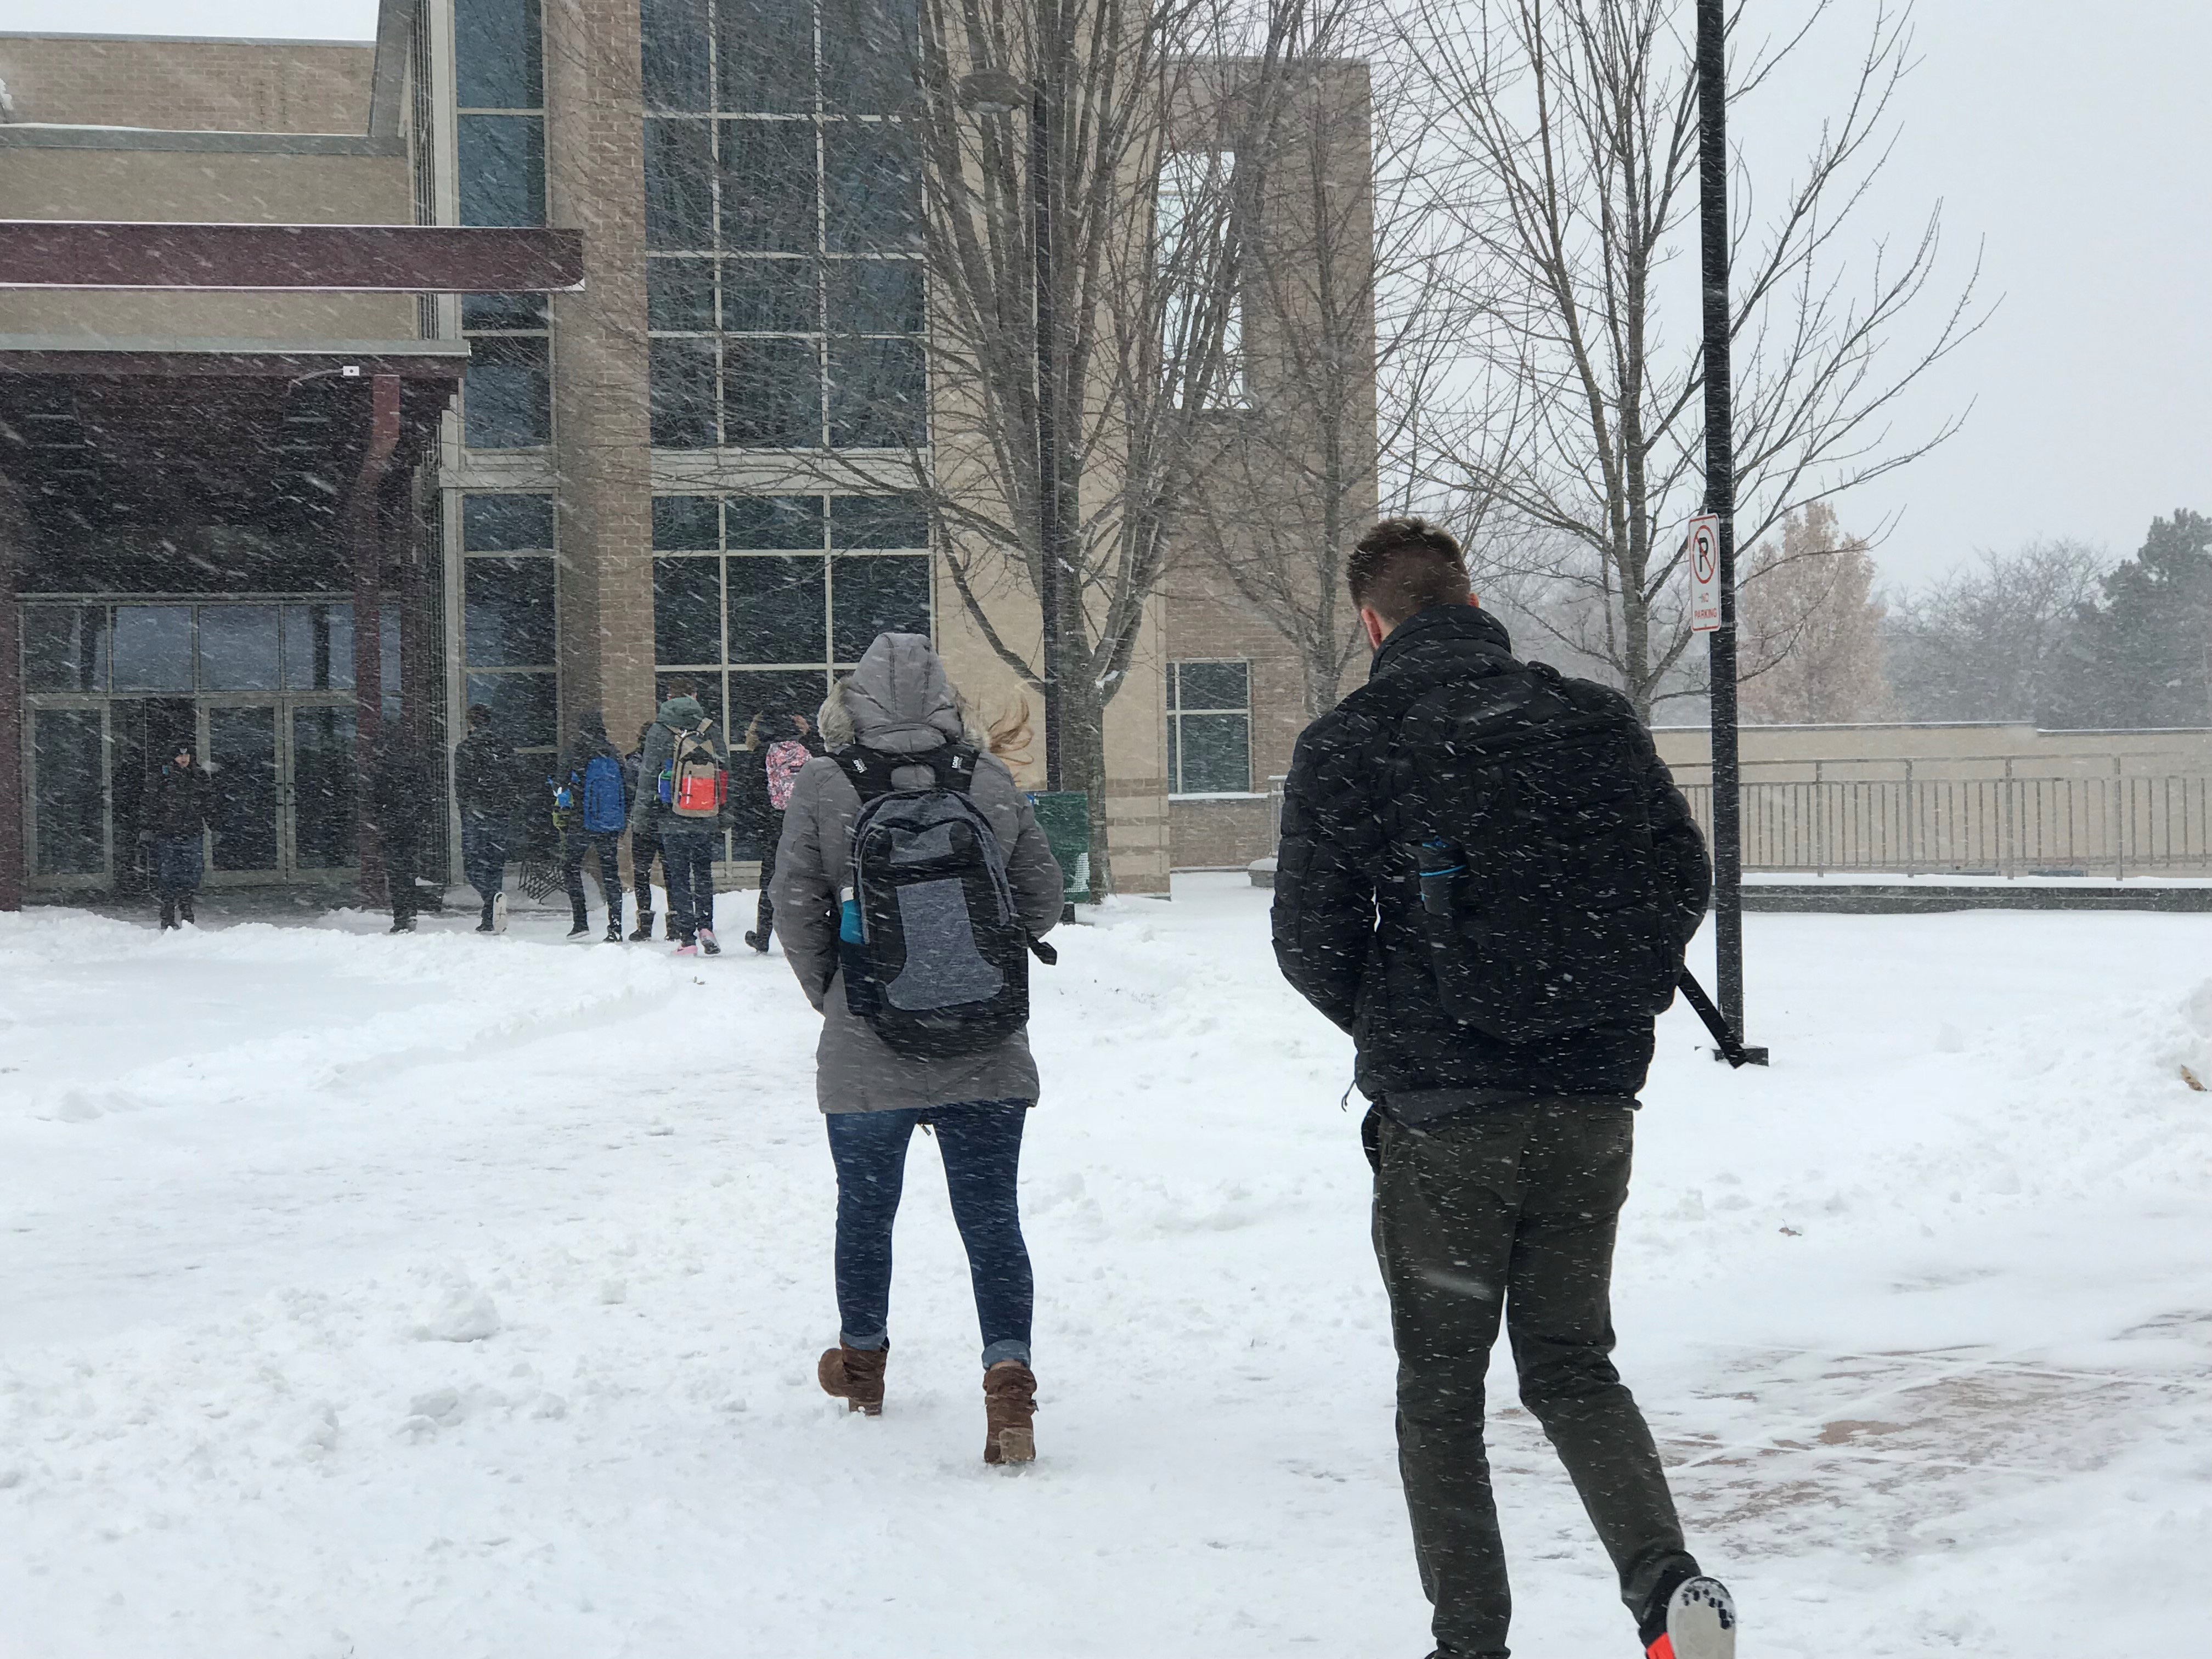 University of Wisconsin-Green Bay students walk on a snowy campus Dec. 13, 2017, during Winter Storm Abigail. (WLUK/Gabrielle Mays)